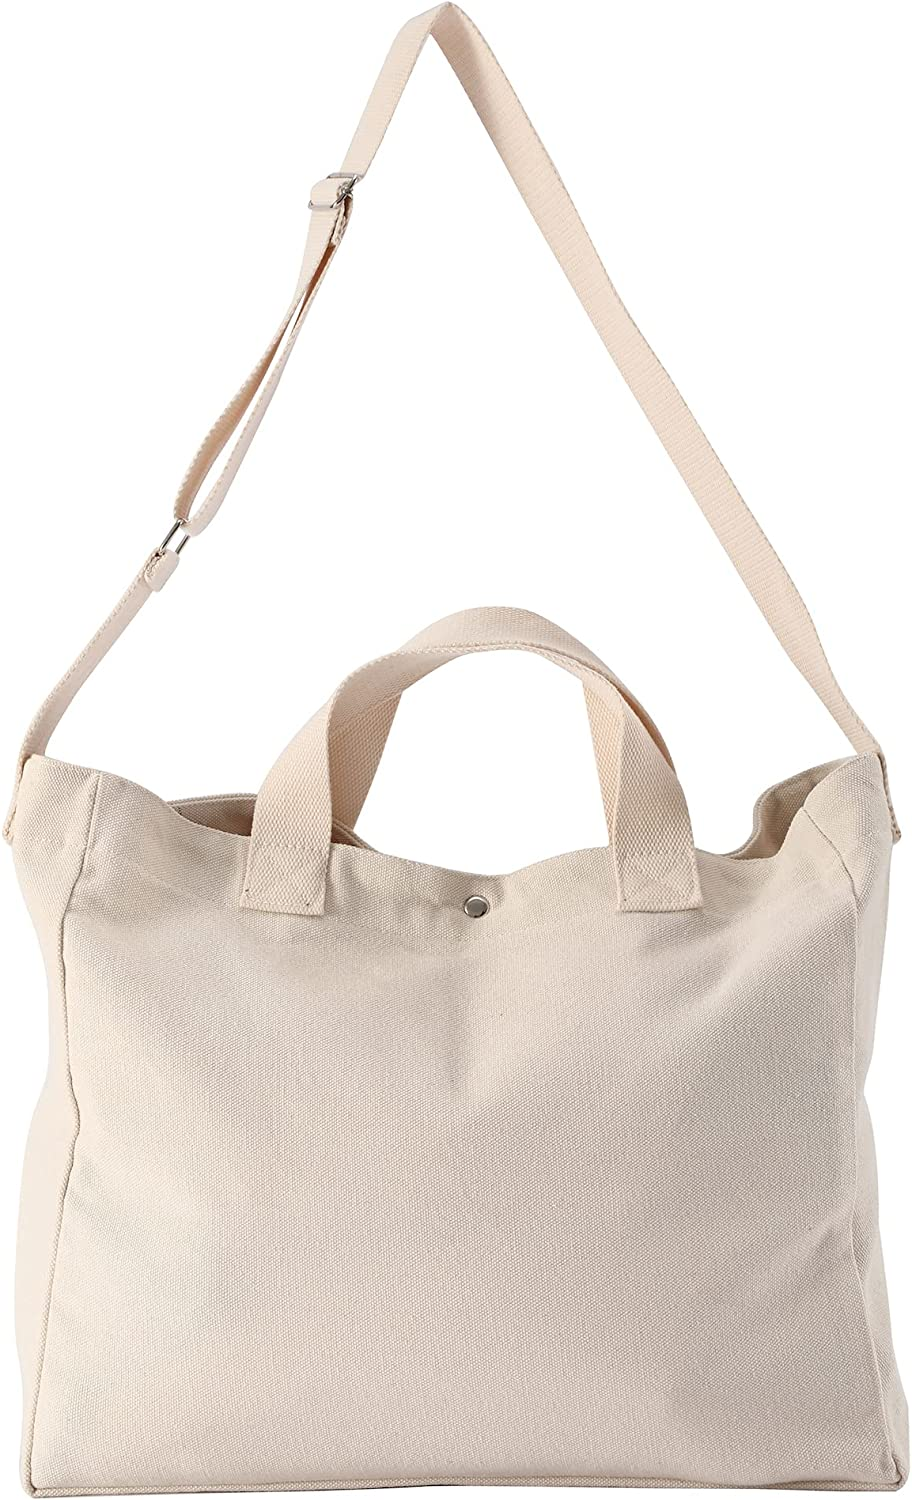 Canvas Tote NEW before selling ☆ Bags Max 40% OFF for Women Shoulder Hobo Cotton Crossbody Large